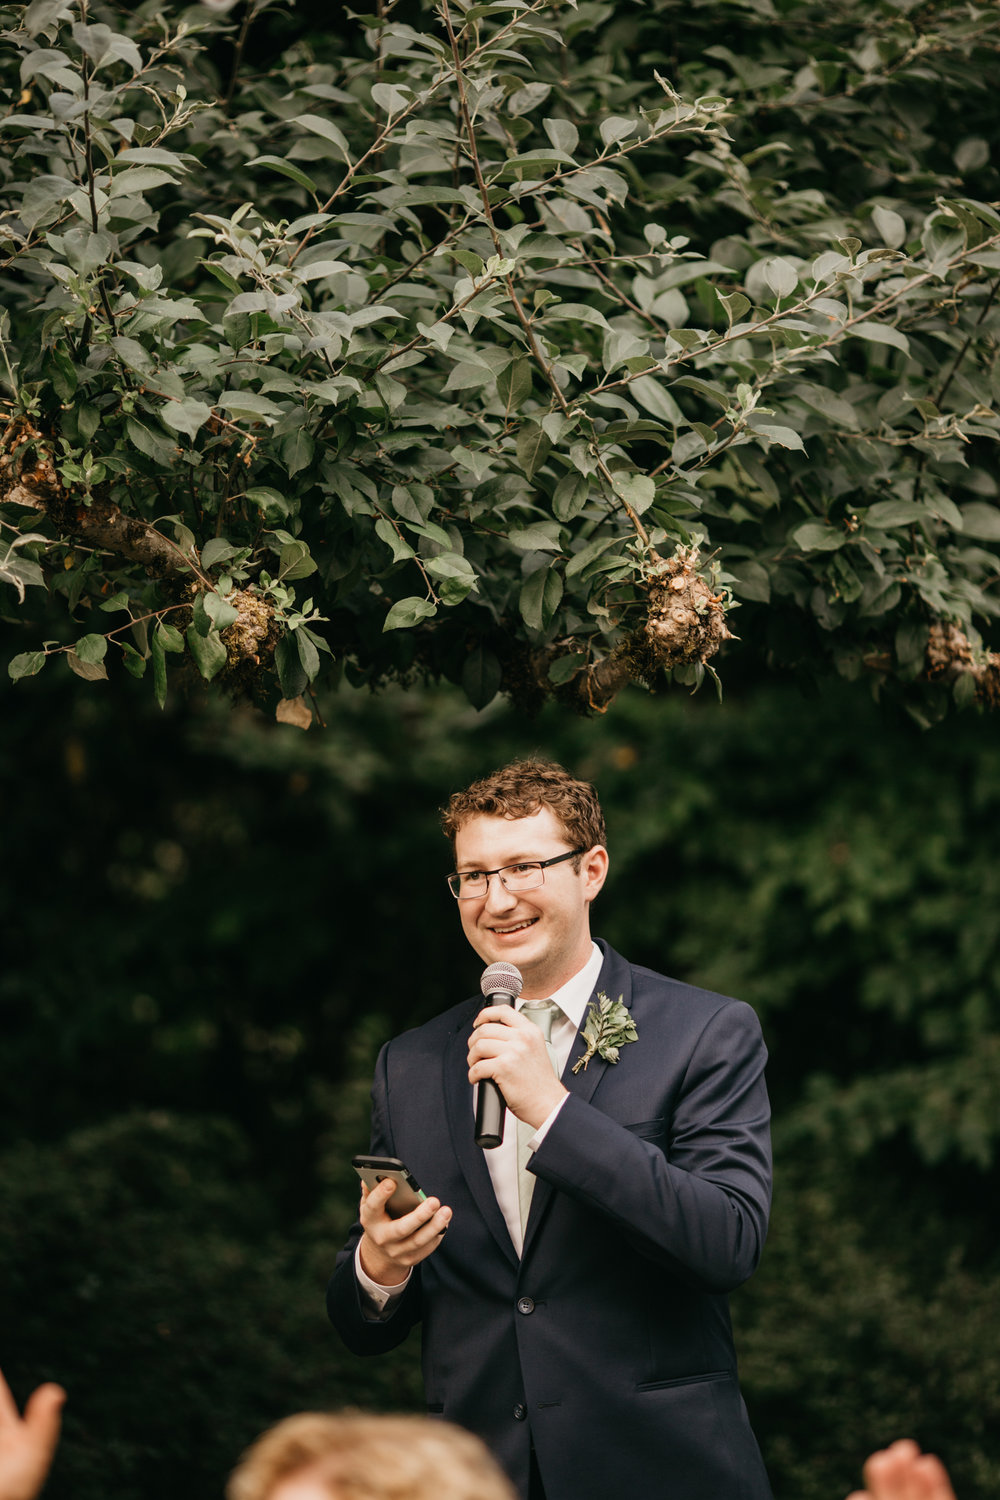 Max&SamPhoto_Seattle Wedding Photographer_Bellevue Robinswood House_027.jpg